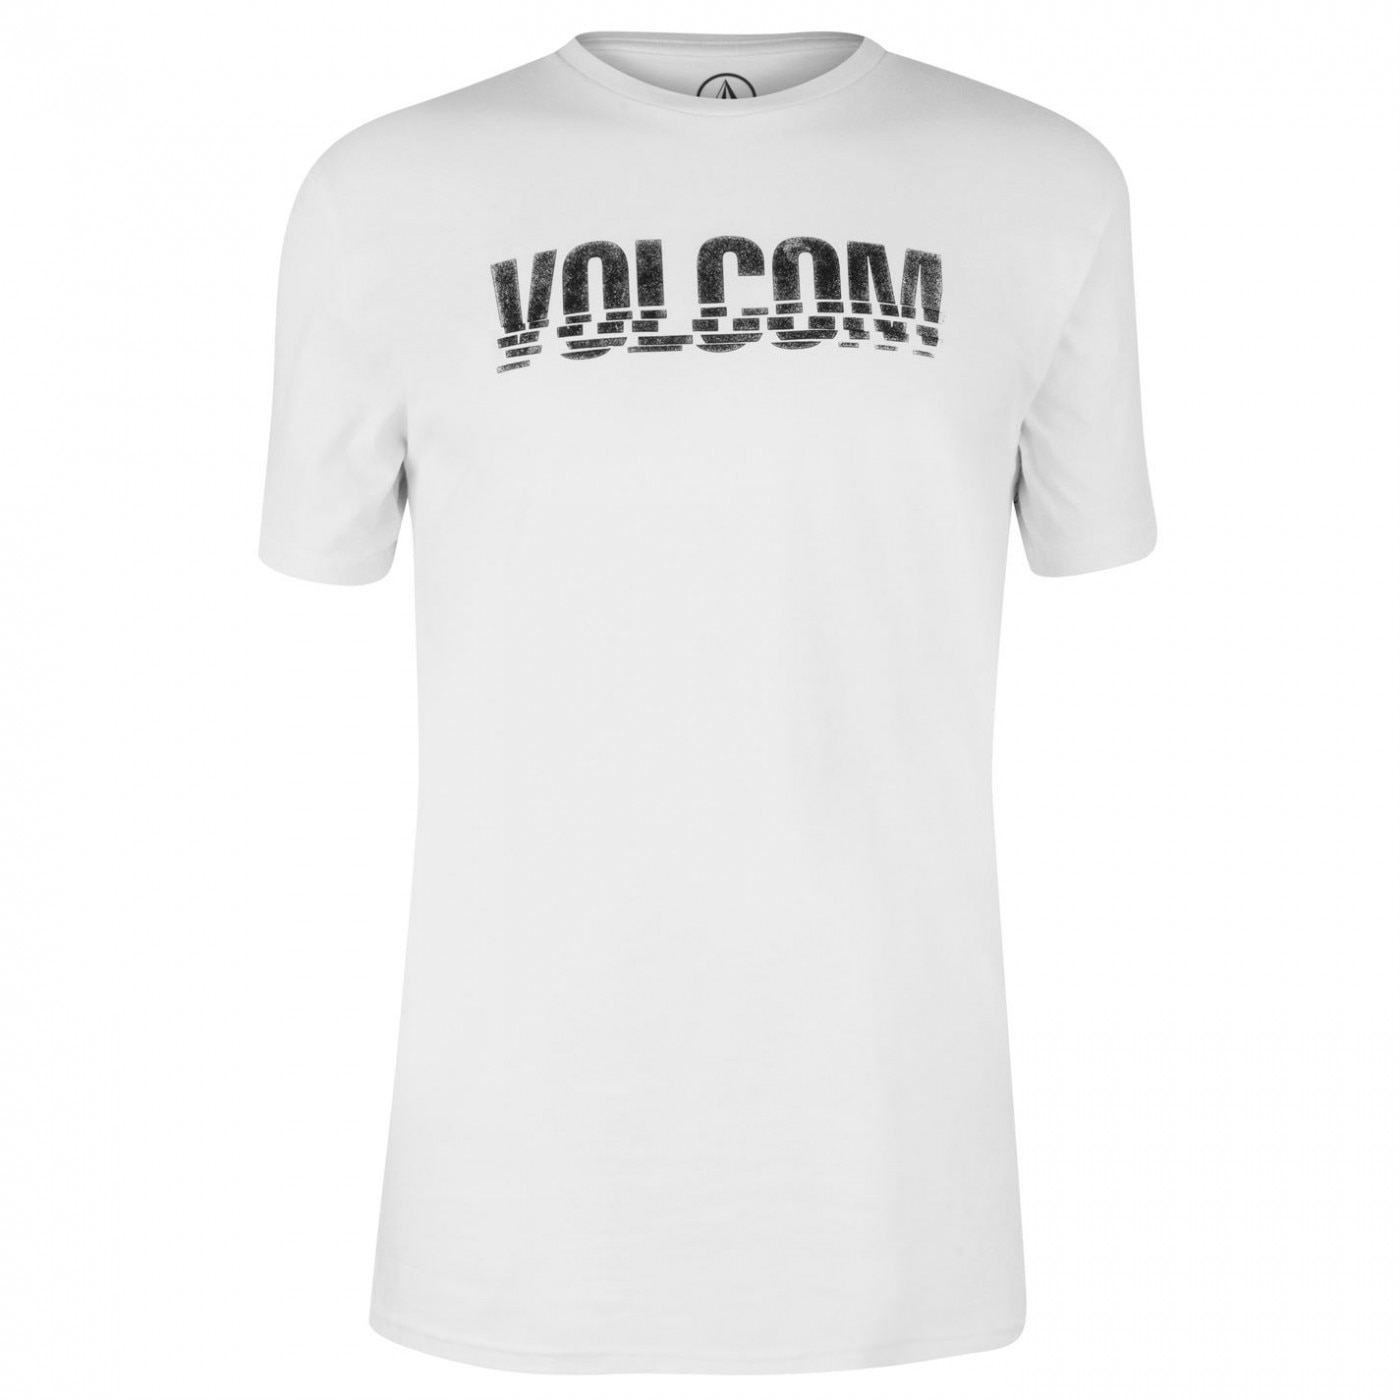 Volcom Mens Printed T-shirt